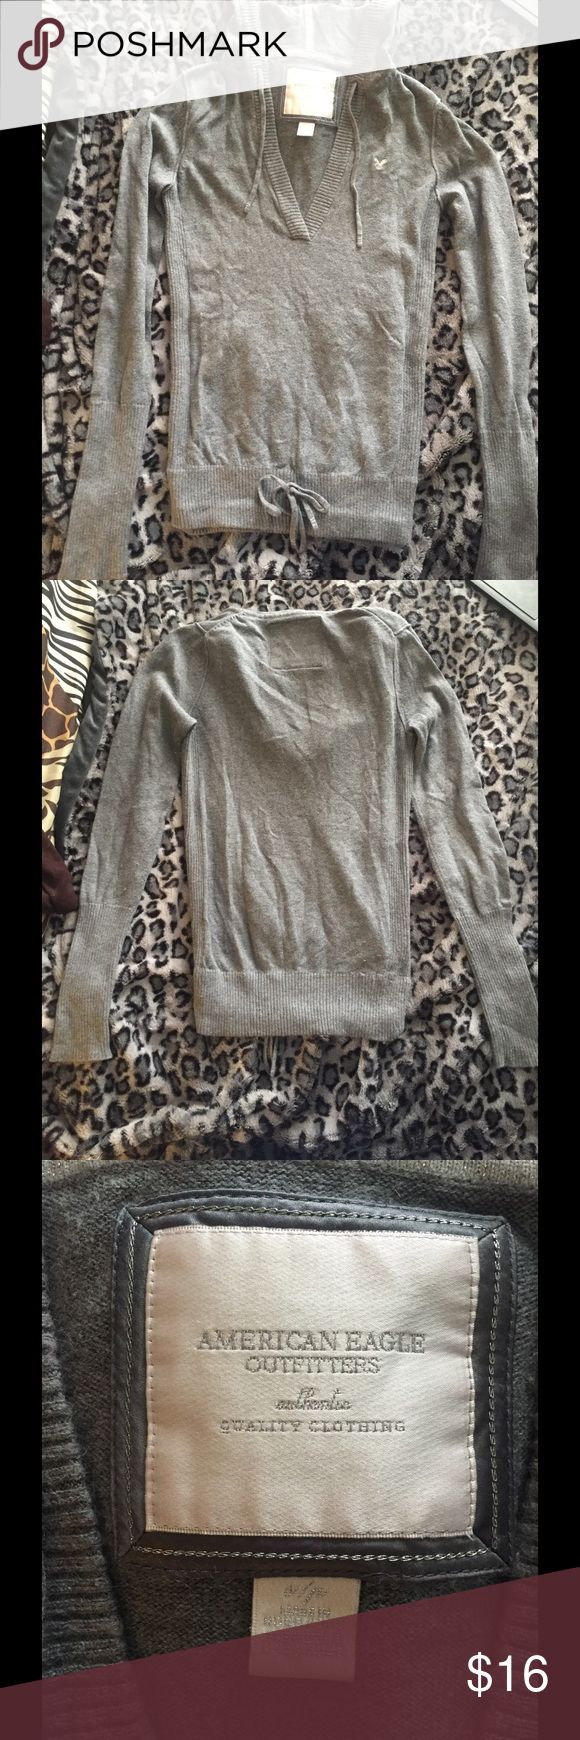 Gray American eagle sweater Really soft gray sweater from American eagle with hood and tie around the bottom, stretchy material American Eagle Outfitters Tops Tees - Long Sleeve